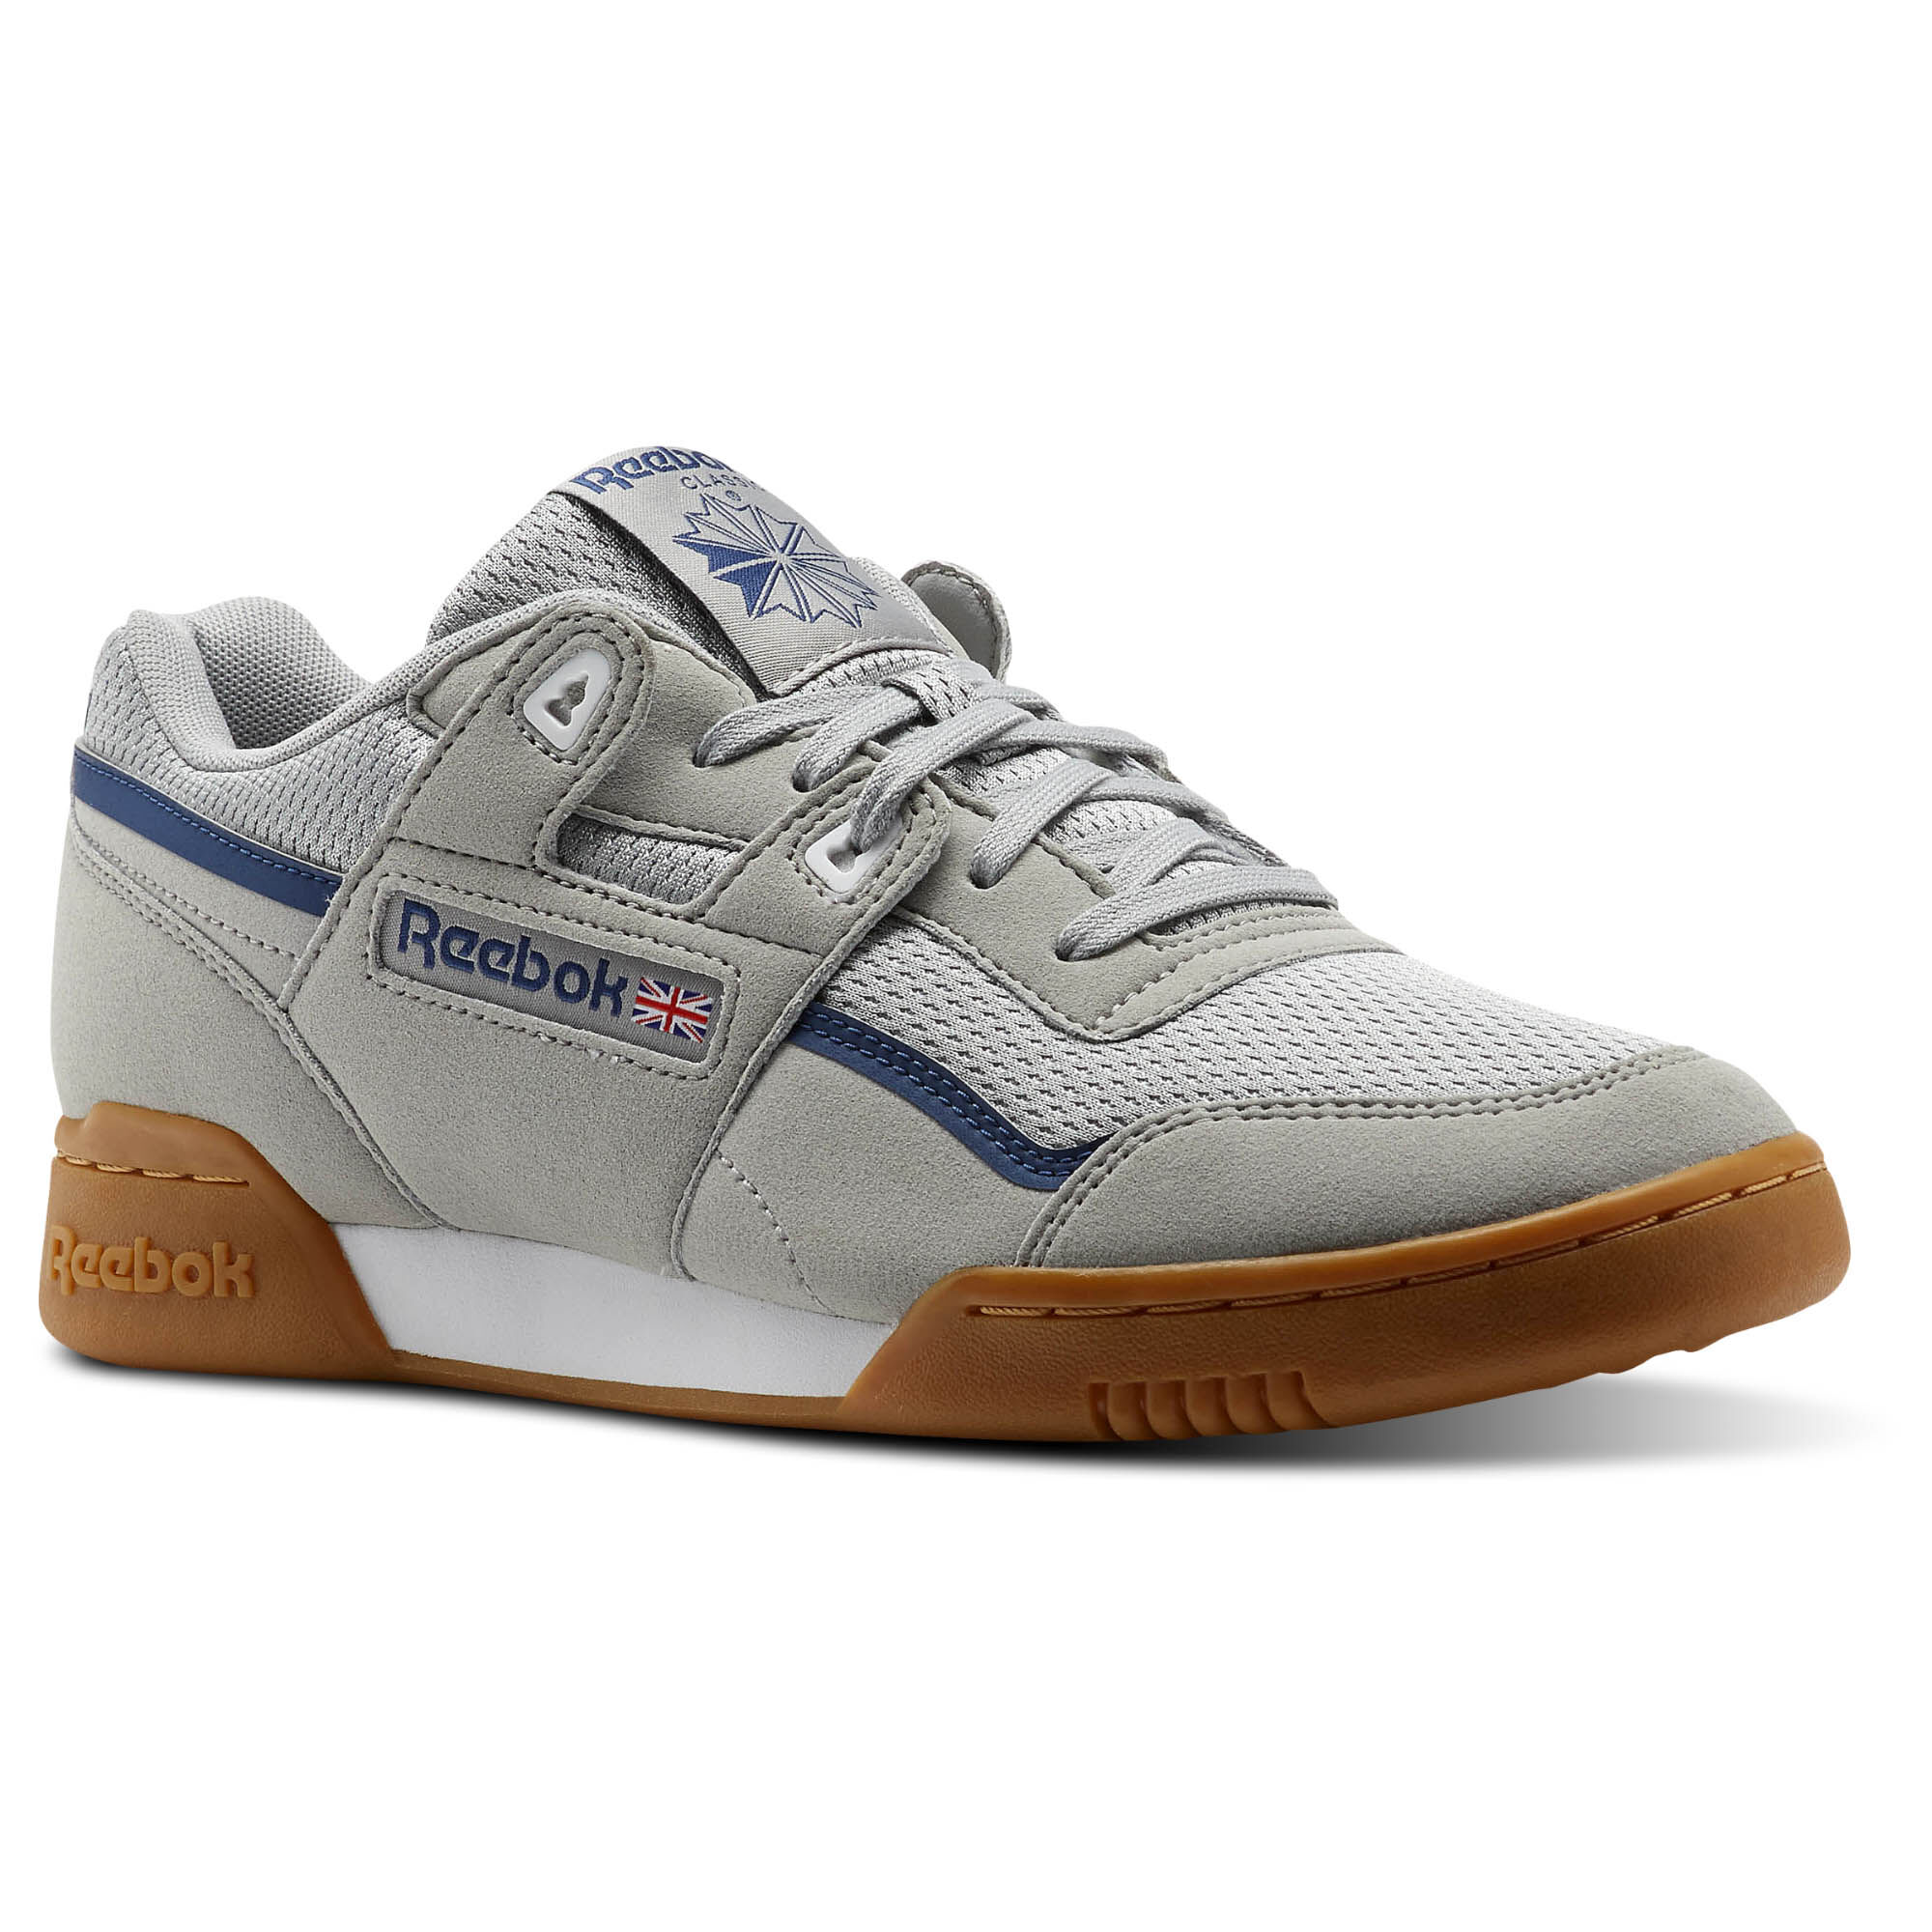 Reebok - Workout Plus MVS Stark Grey/Washed Blue/Ash Grey/White CM9926.  Read all 7 reviews. Men Classics